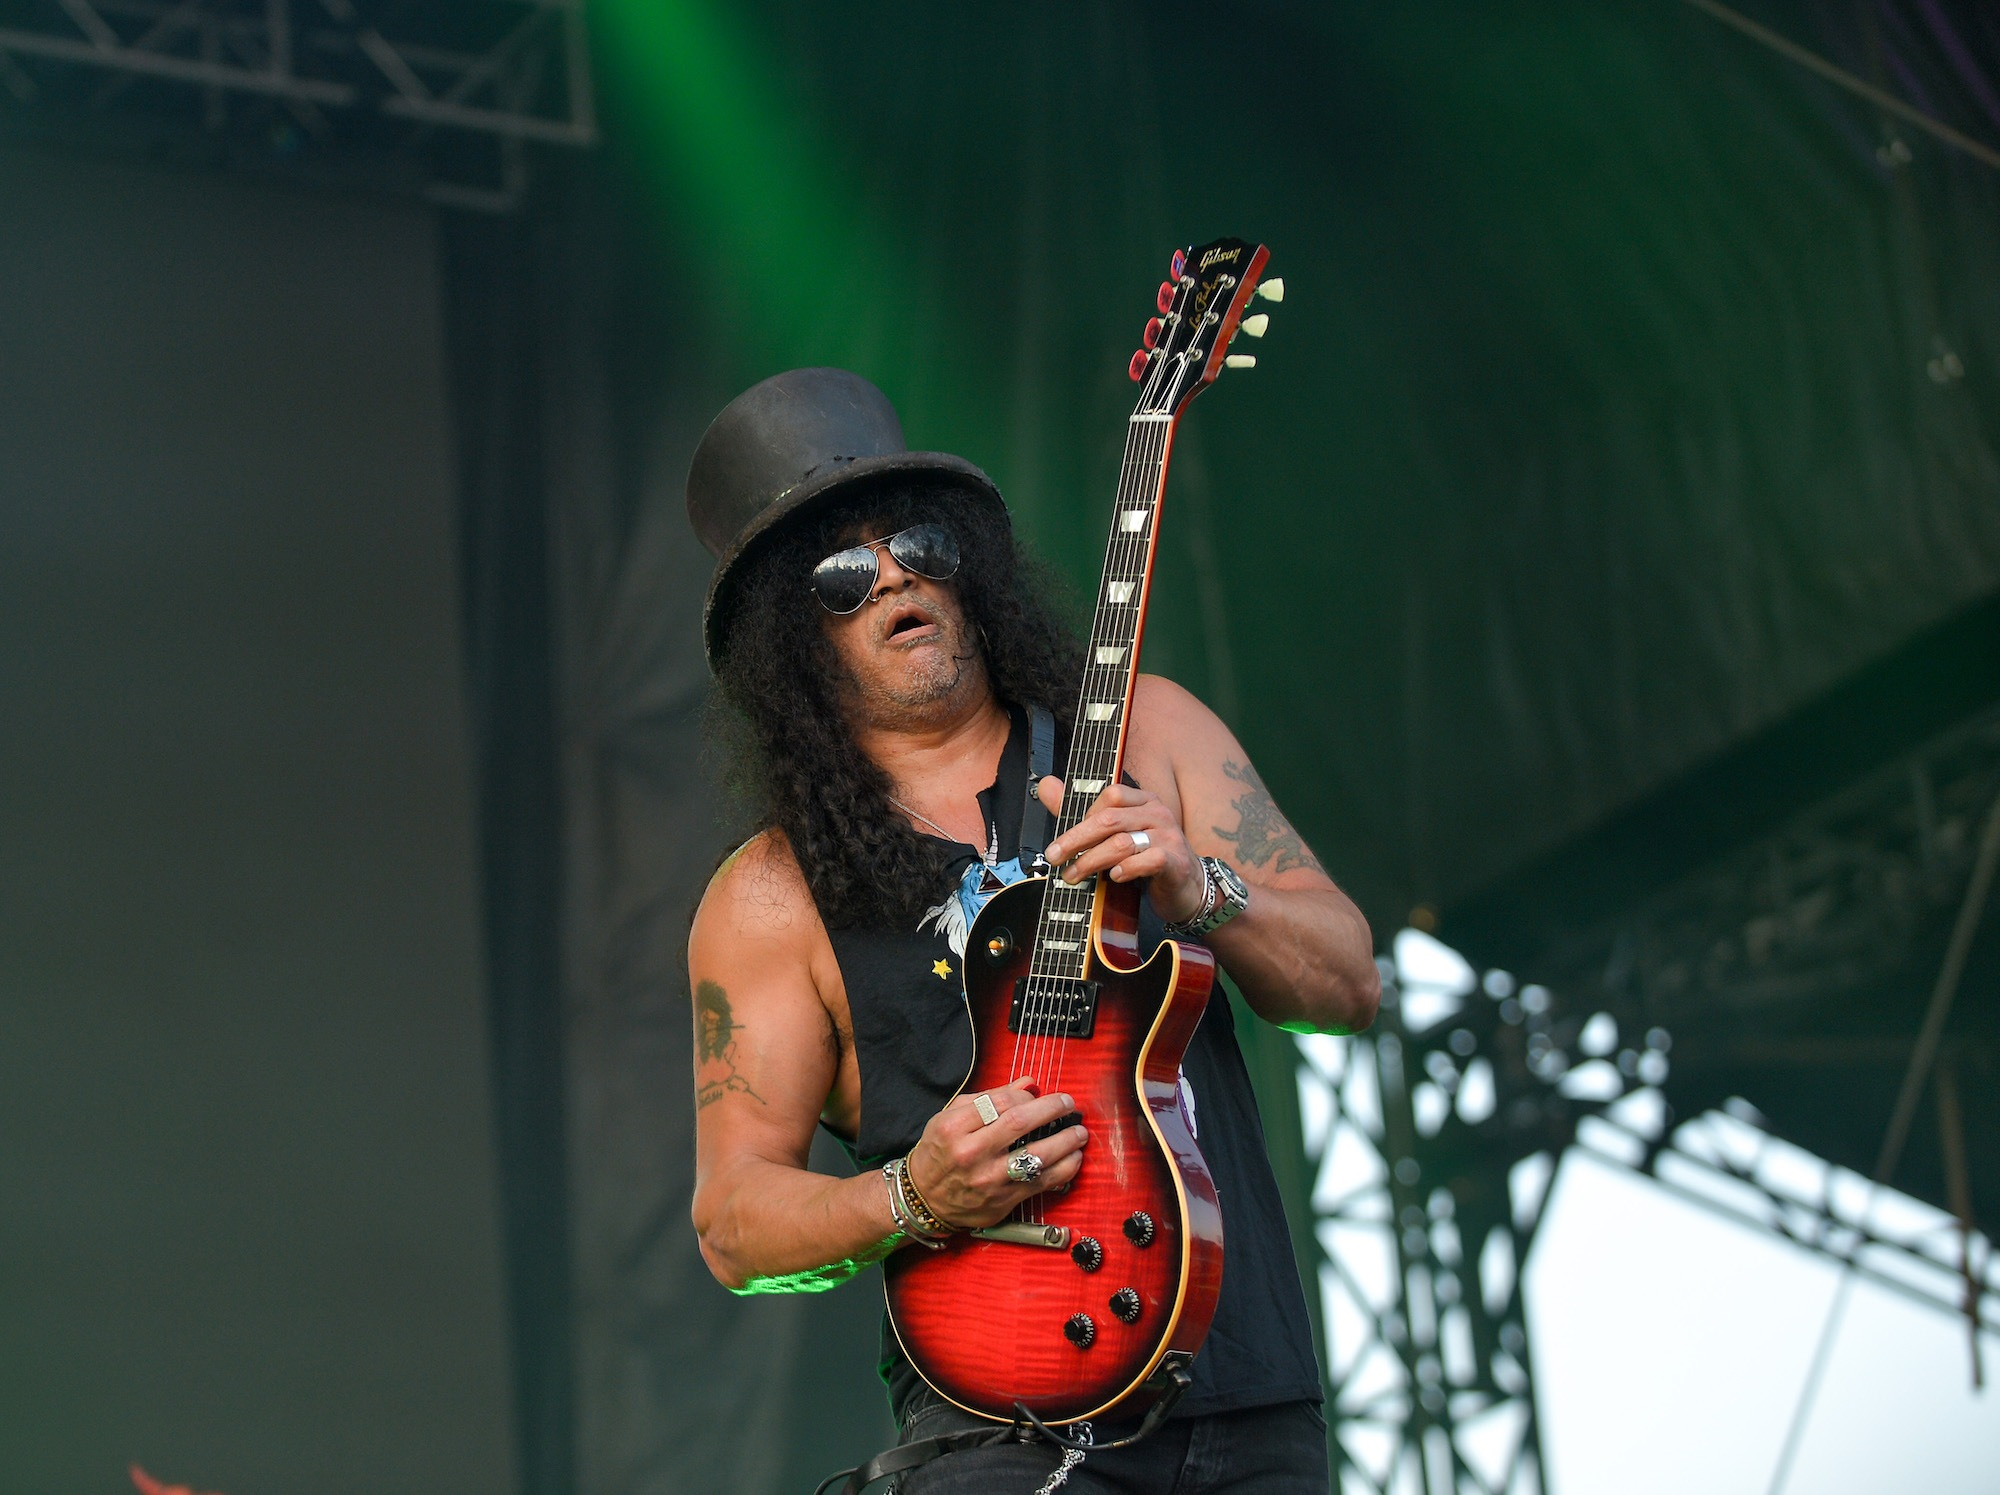 SLASH Featuring Myles Kennedy And The Conspirators Live at Lollapalooza [GALLERY] 6